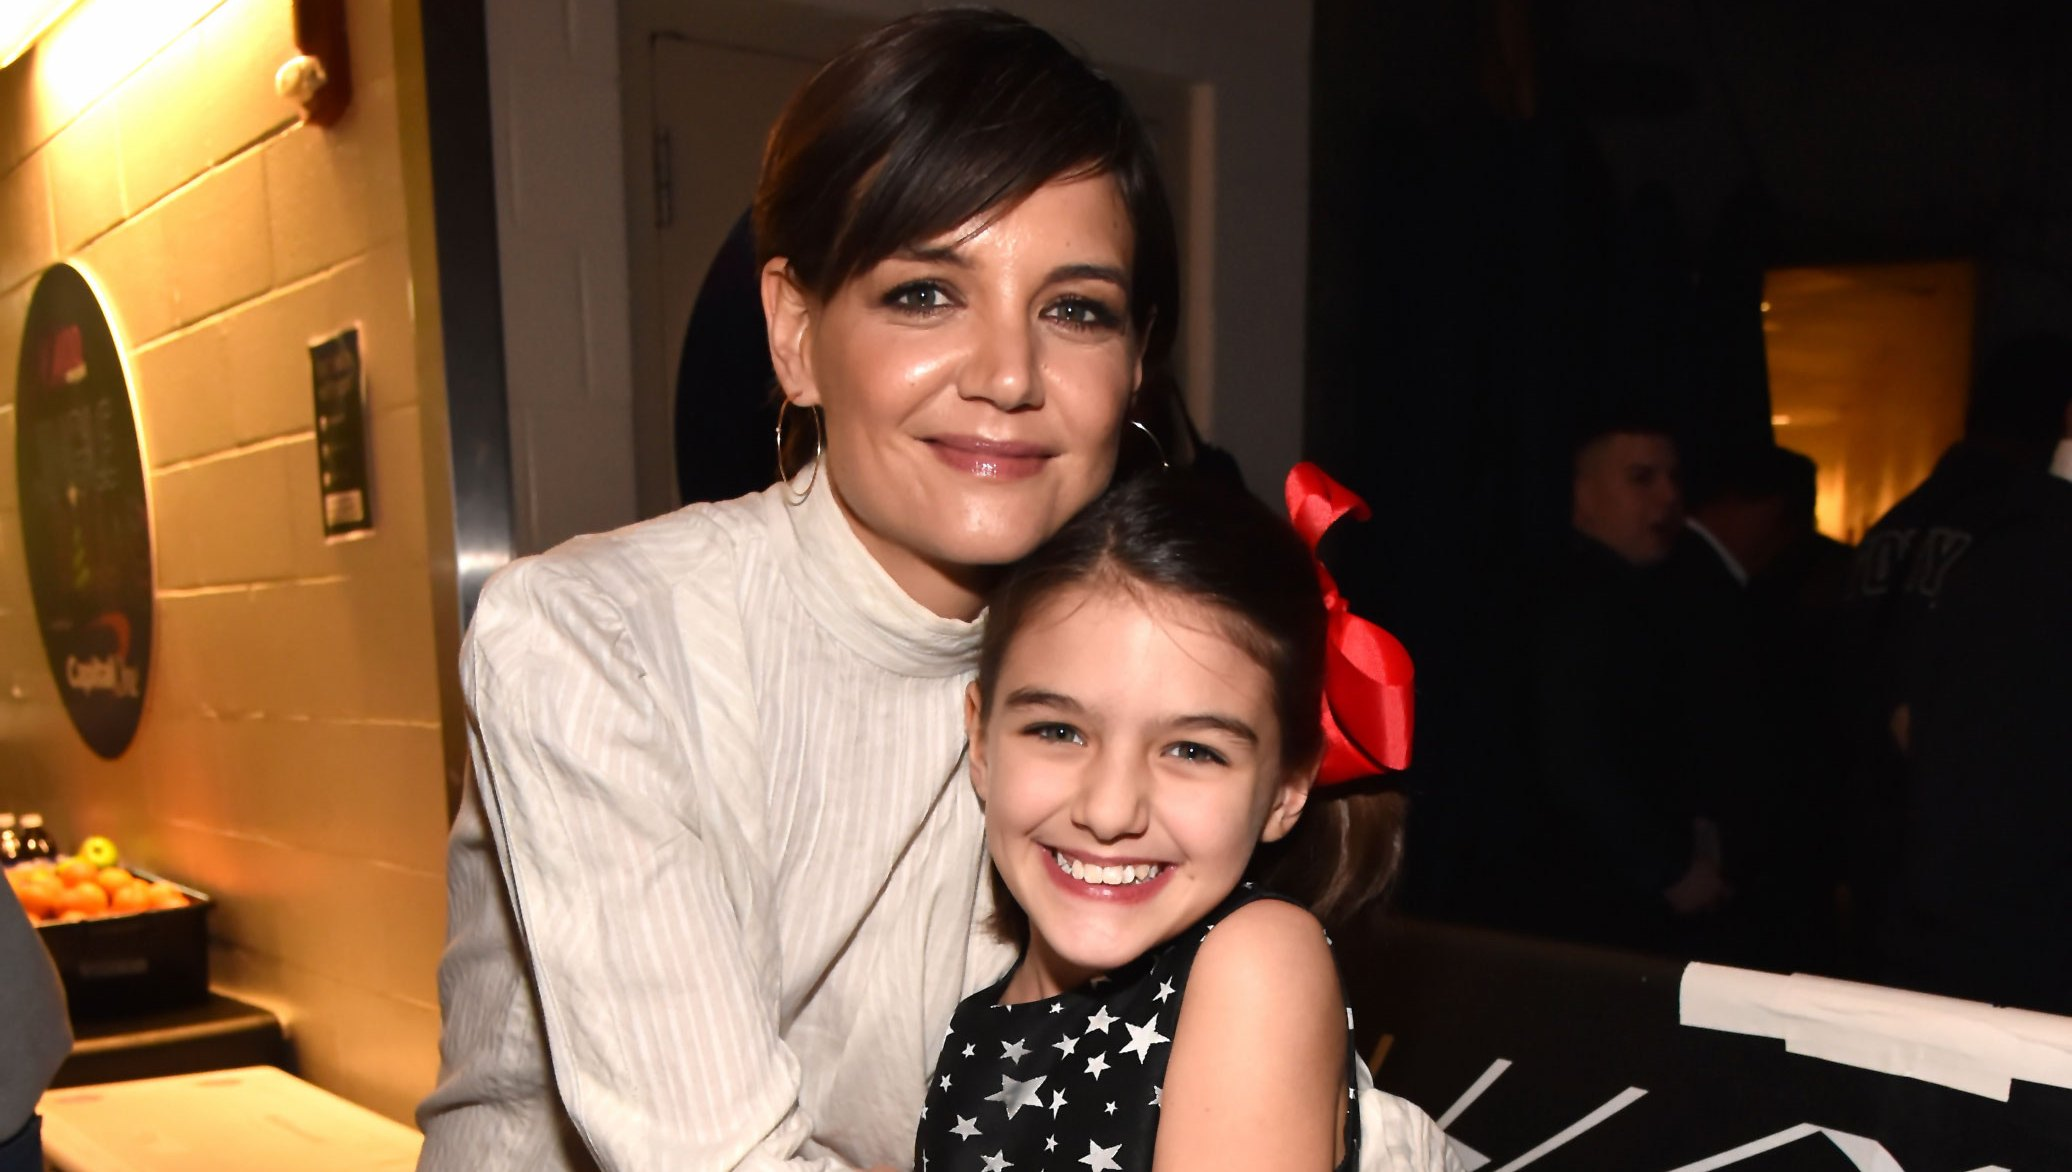 Suri Cruise Looks Just Like Dad Tom Cruise on Visit to Refugee Camp With Mom Katie Holmes: Photos